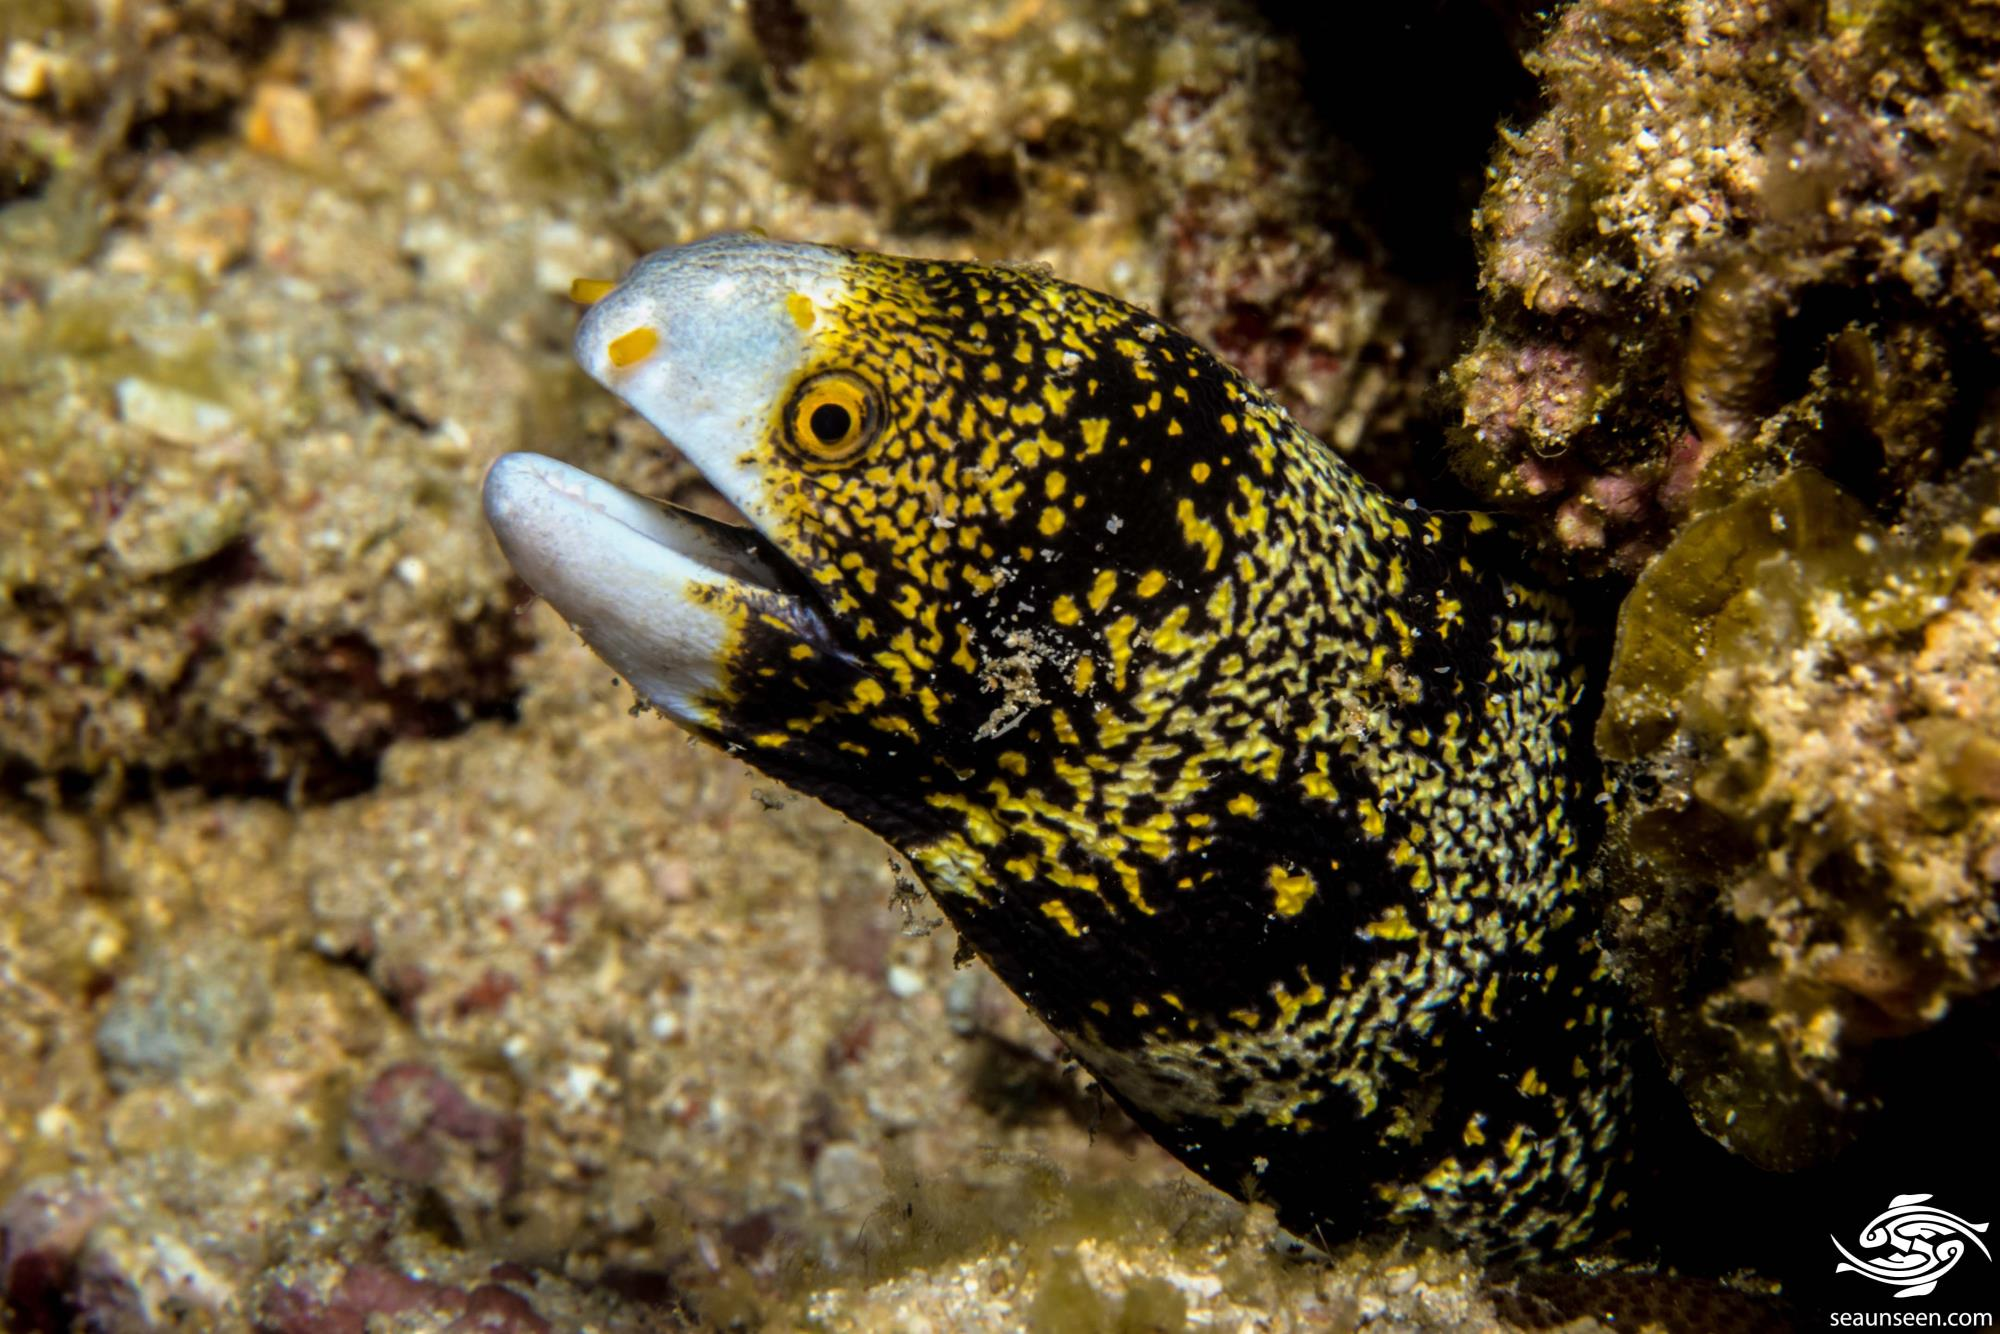 Snowflake moray (Echidna nebulosa) also known as the Floral Moray Eel, the Starry Moray Eel and the Clouded Moray Eel